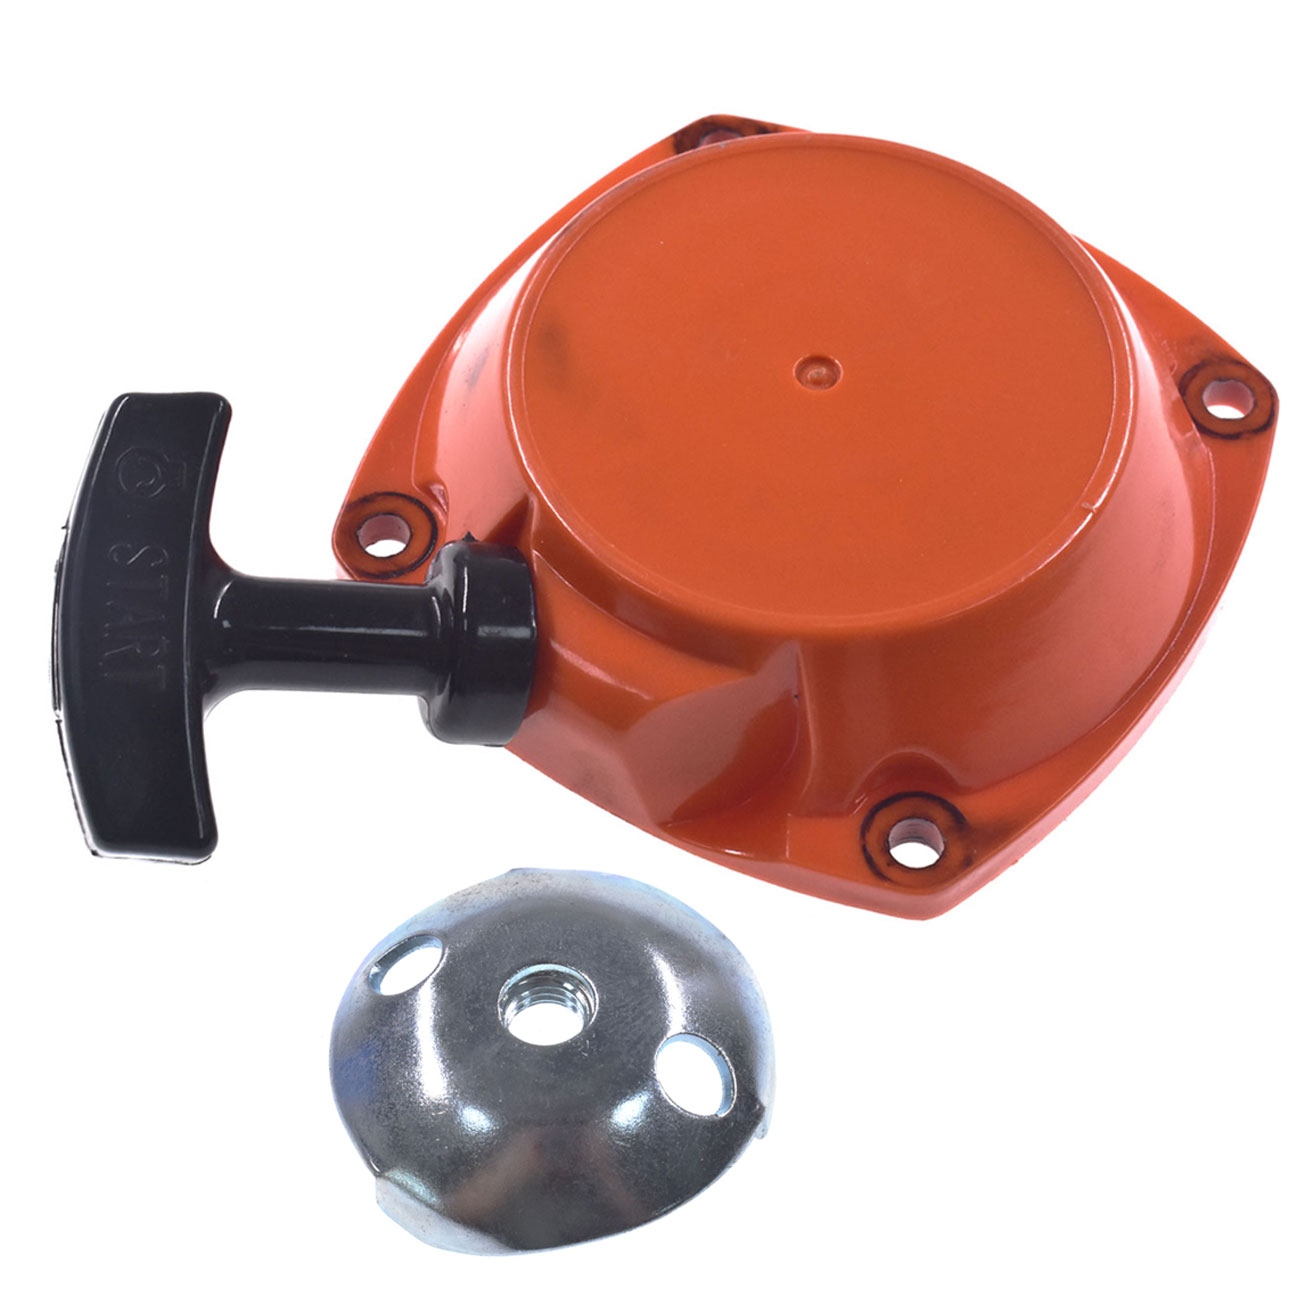 Chainsaws Garden Tools Gas Fuel Tank W Tube Hose Cap Engine Cover For Zenoah G35l G45l Husqvarna 143rii